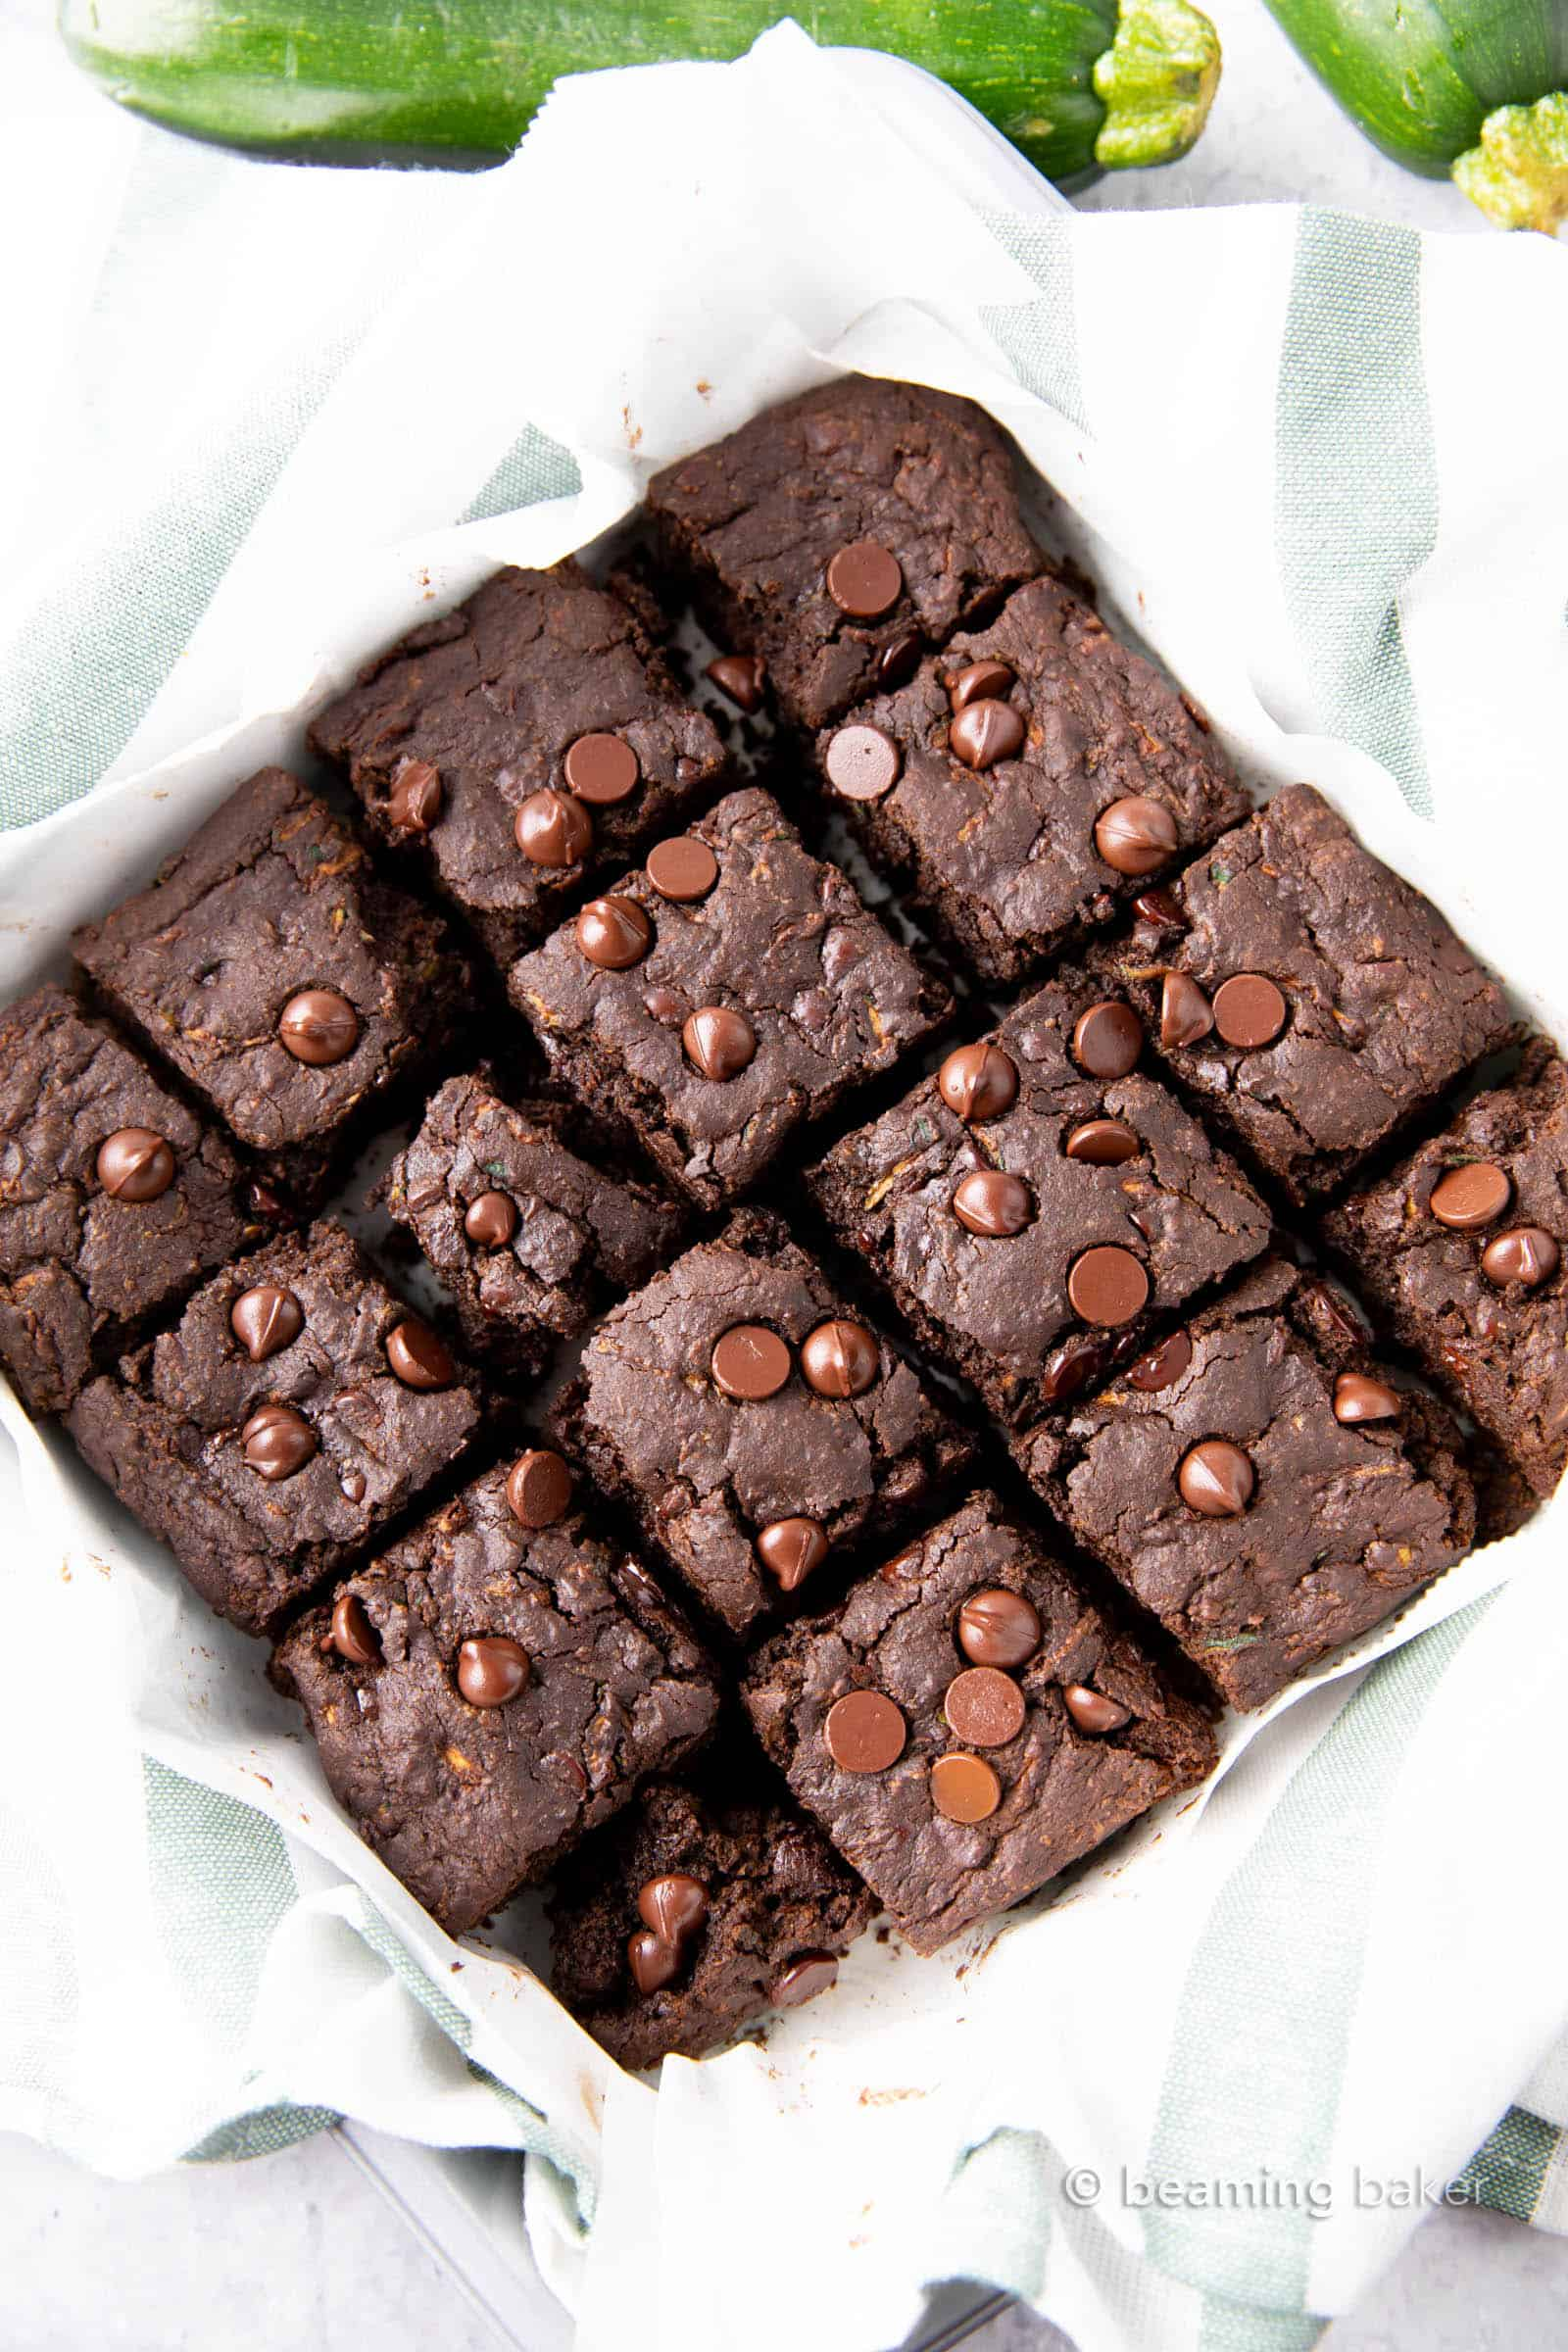 Healthy Zucchini Brownies (Vegan, GF): this chocolate zucchini brownies recipe yields moist, tender cakey brownies with rich chocolate flavor & a lightly fudgy texture. Vegan, Healthy. #Zucchini #ZucchiniBrownies #HealthyDesserts #Healthy #Vegan | Recipe at BeamingBaker.com